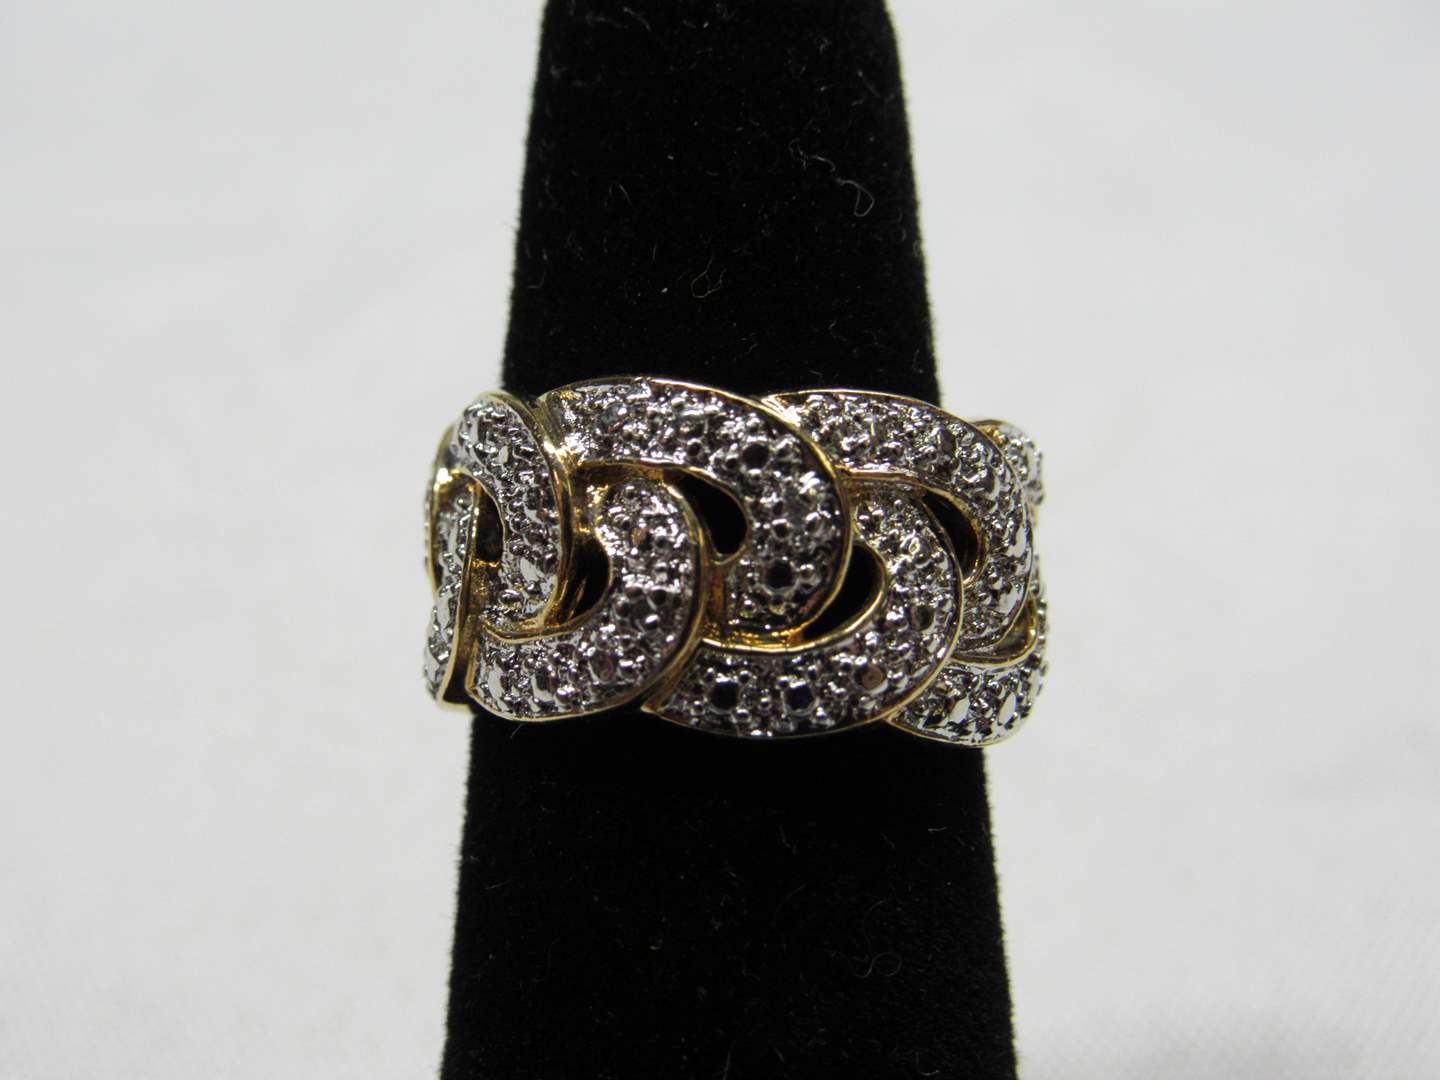 Lot # 220  Gold over sterling silver interlocking design ring size 5 (main image)